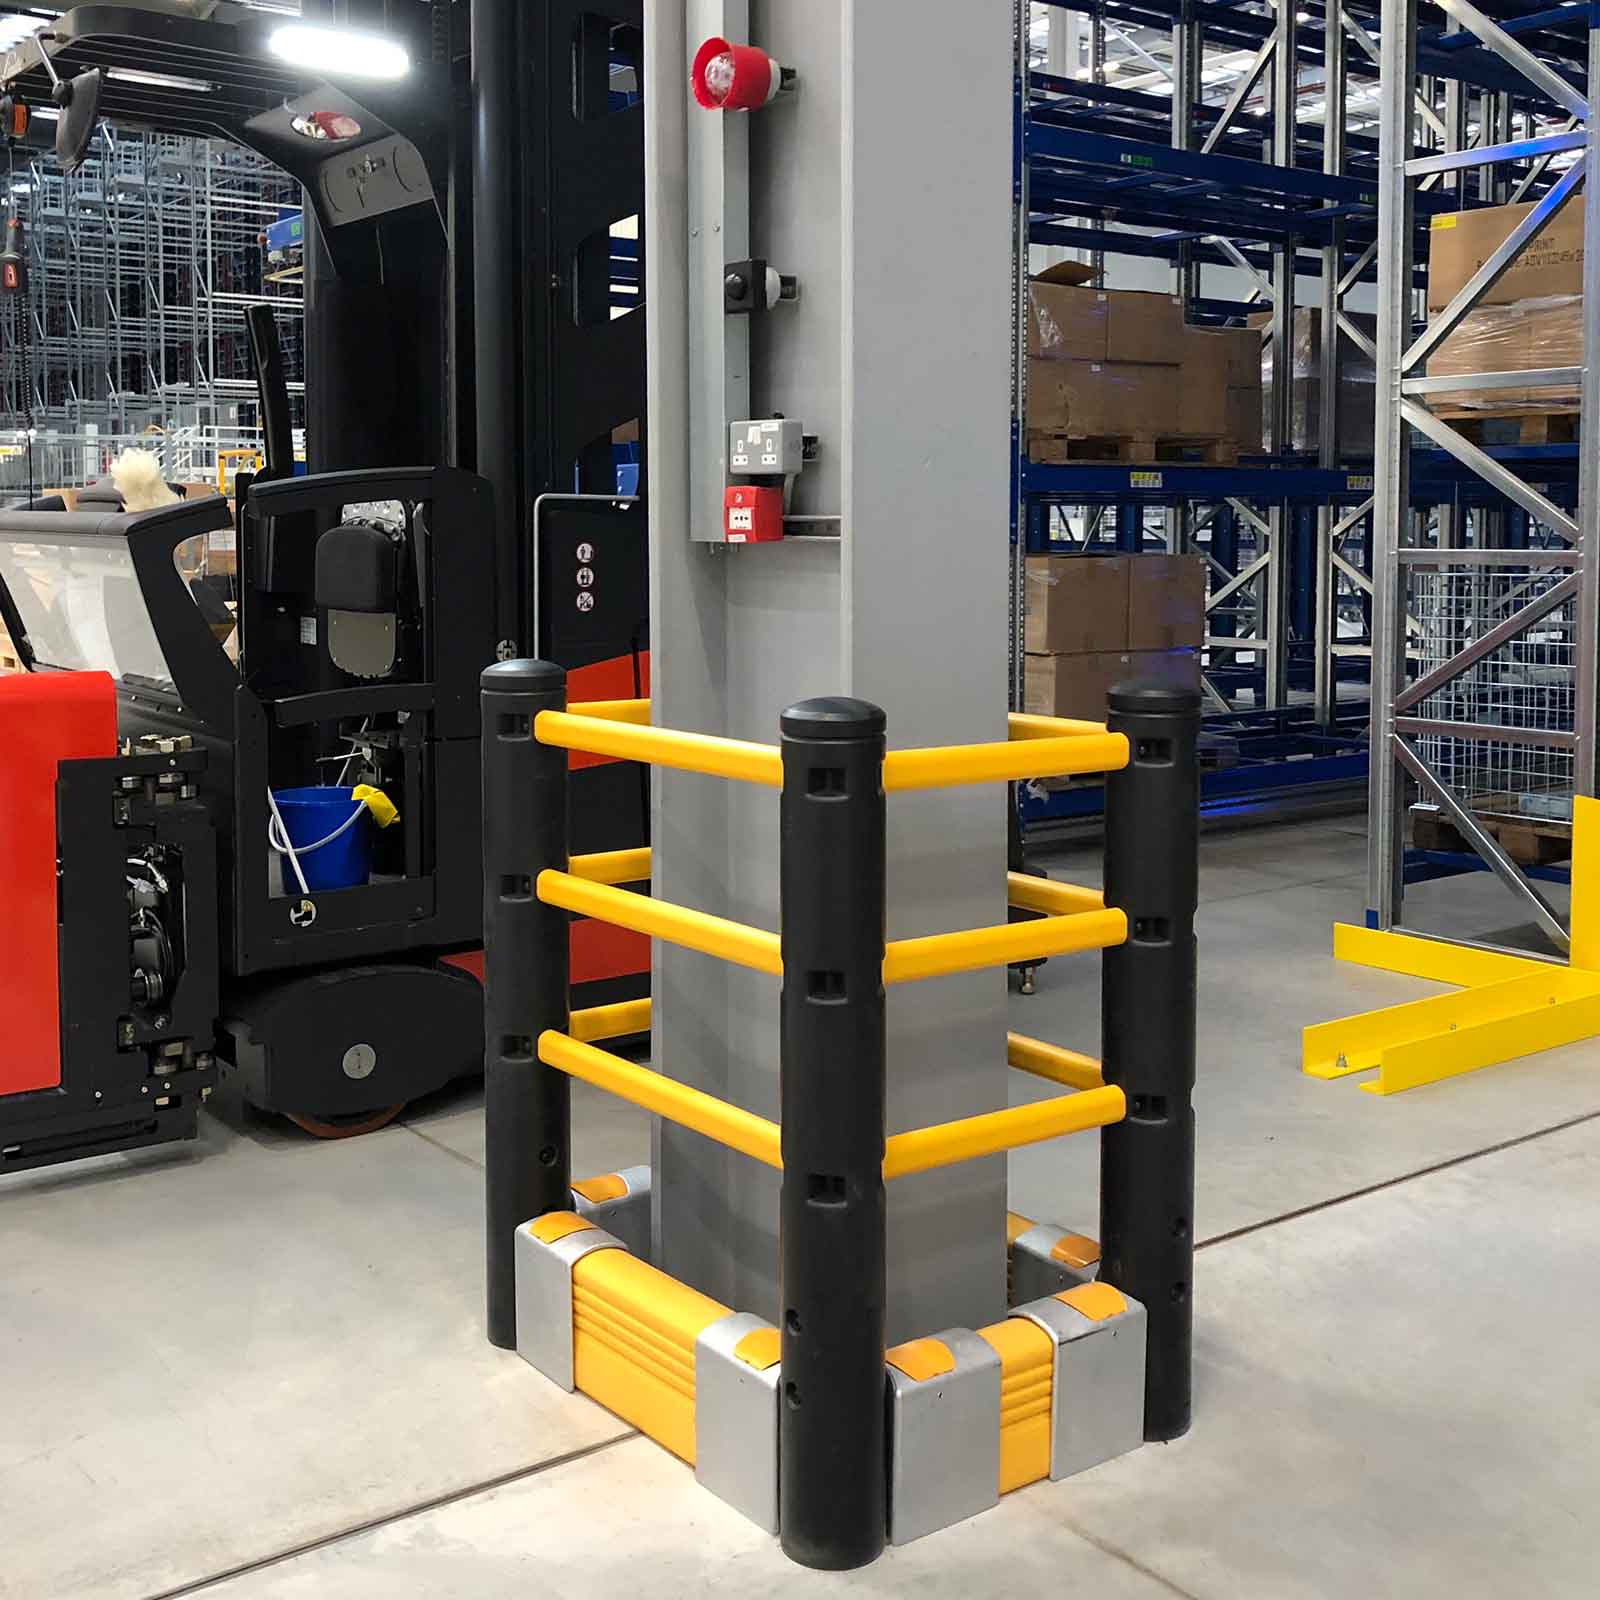 McCue Pedestrian Barrier Safety Protection with Floor Mounted Crash Barrier in Warehouse